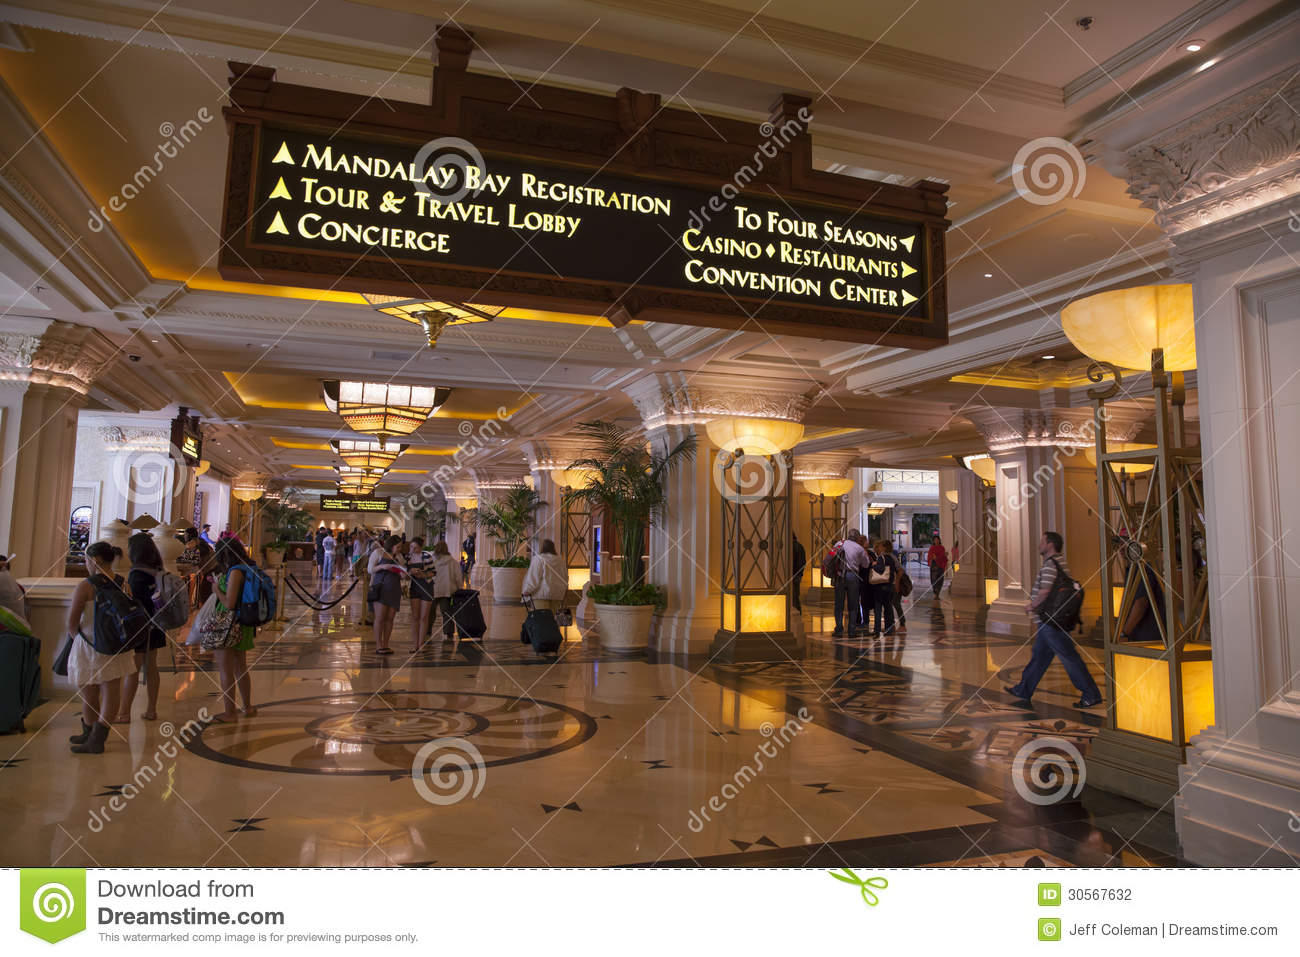 Delightful Download Mandalay Bay Registration Area In Las Vegas, NV On April 19, 201  Editorial Gallery